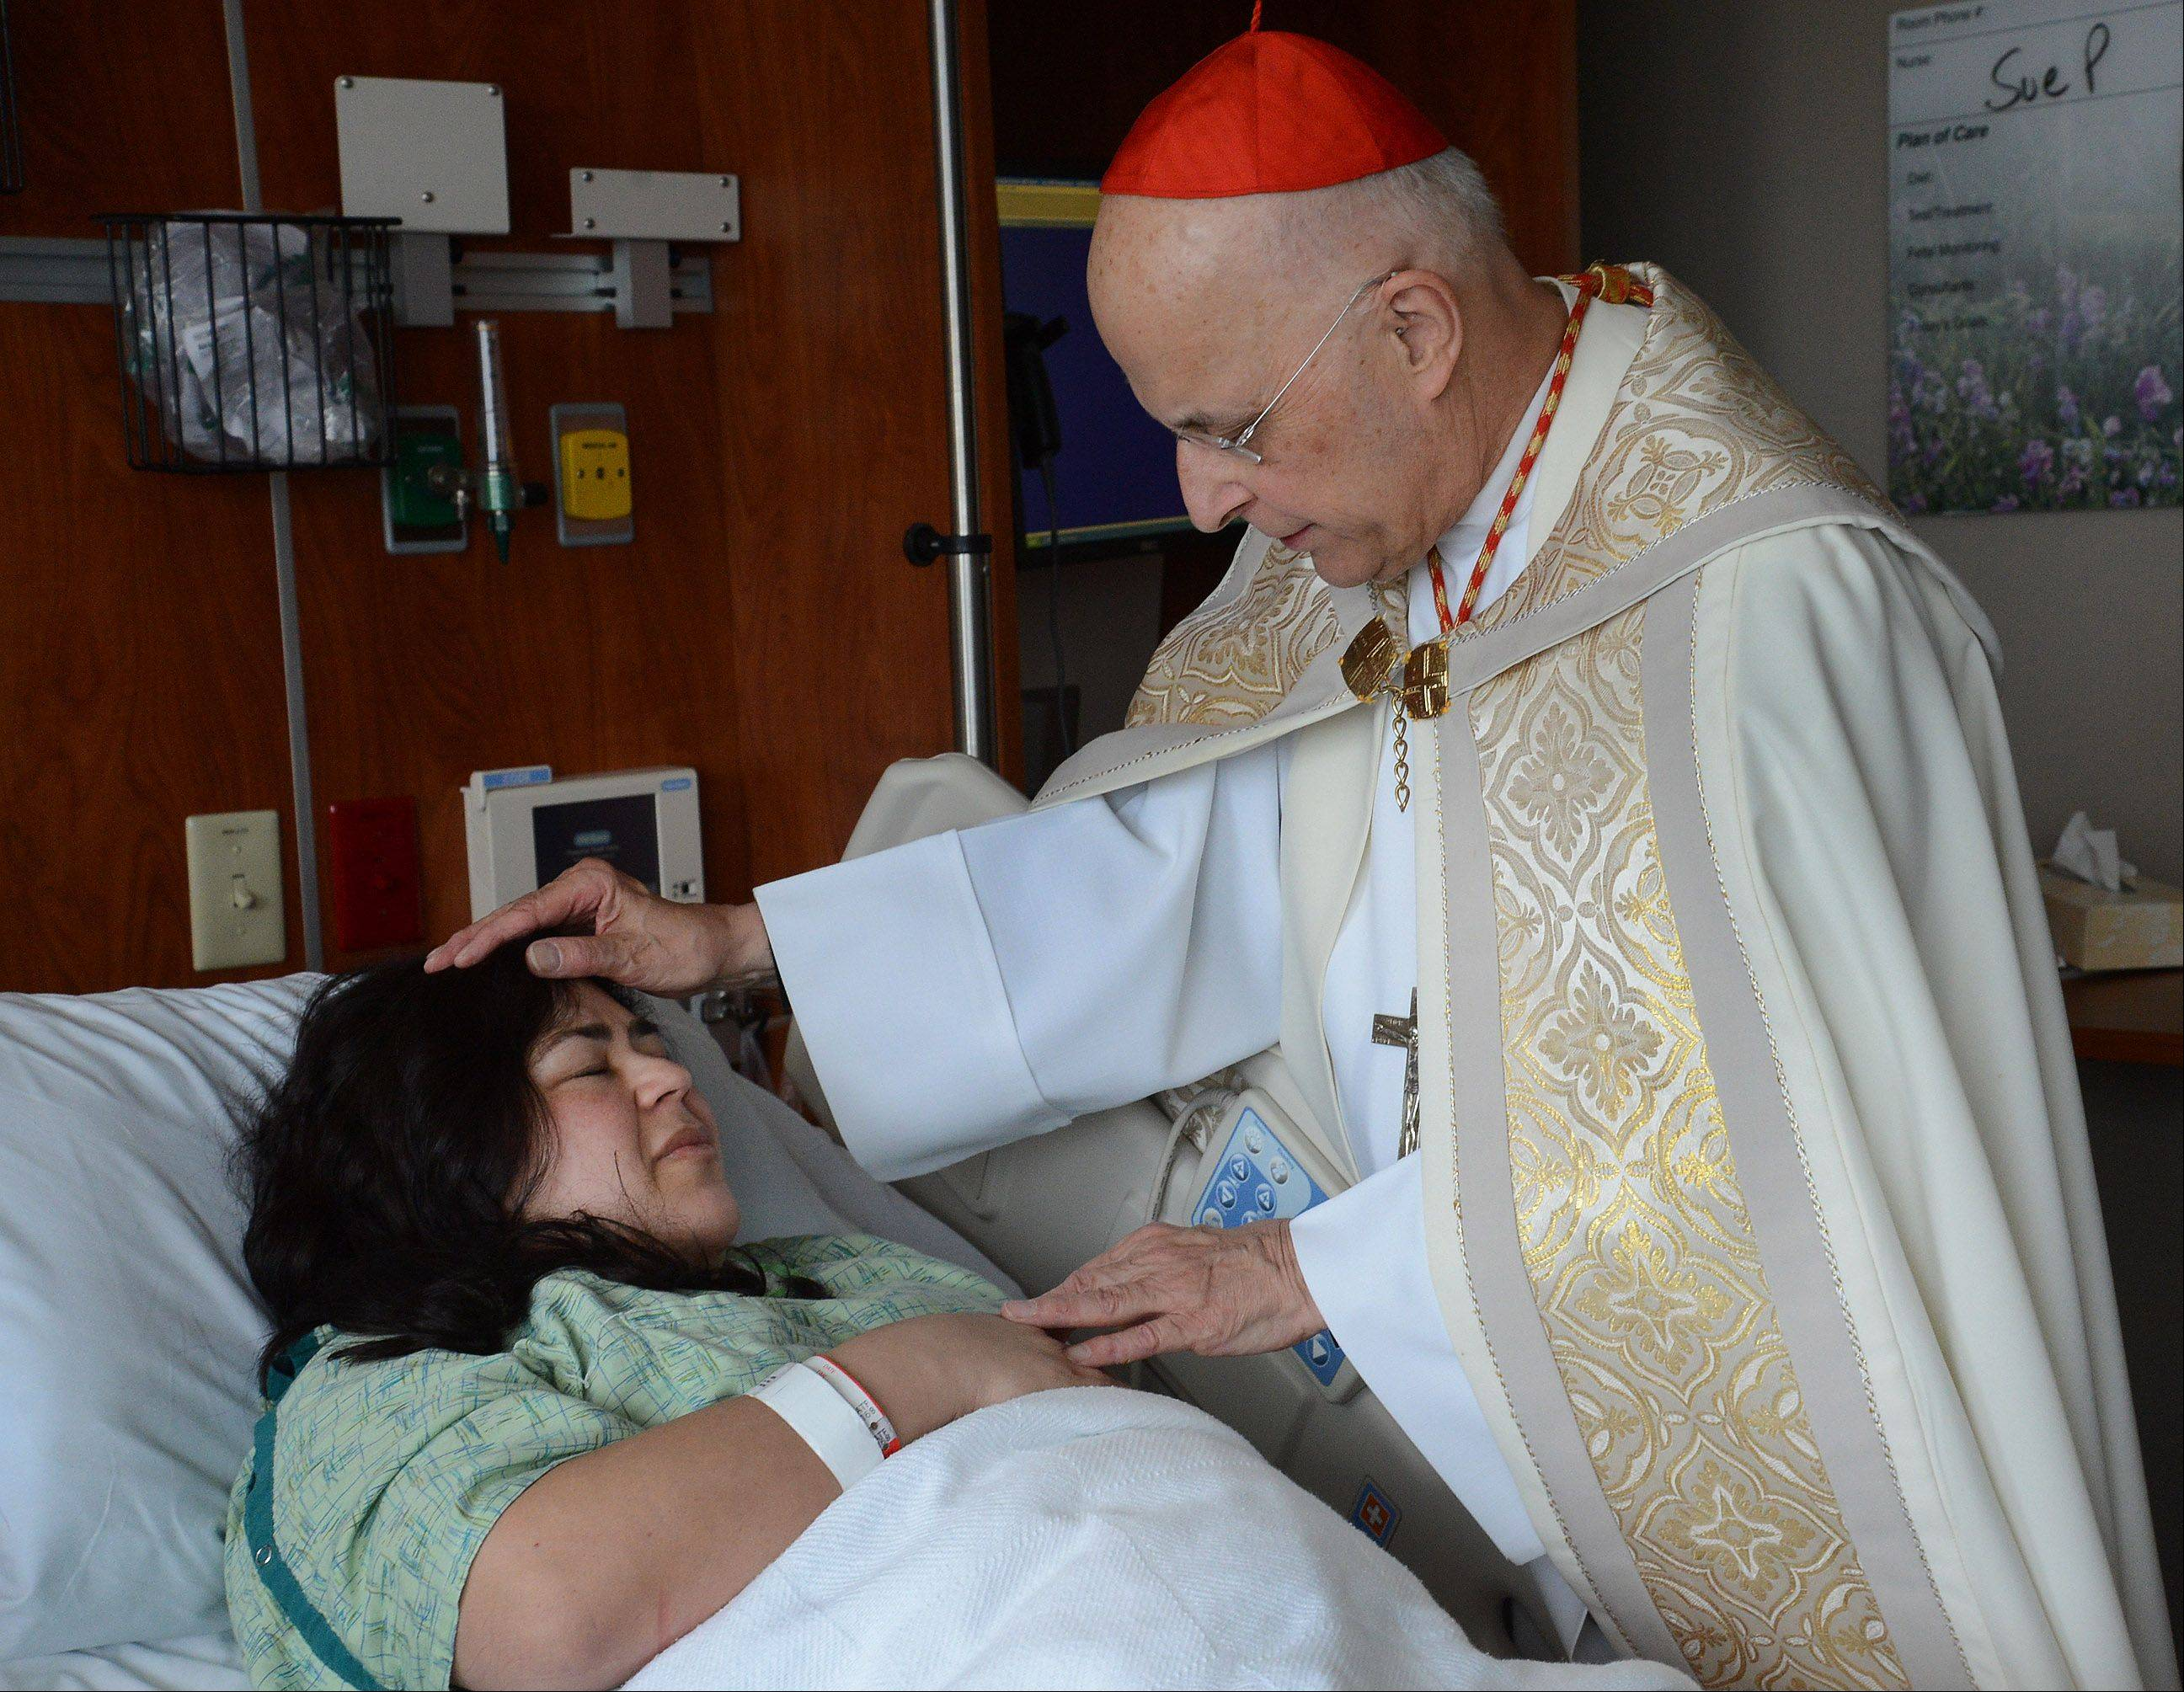 Cardinal Francis George gives a blessing to Maria Mora of Carpentersville at the new Alexian Brothers Women & Children's Hospital in Hoffman Estates. George visited the hospital Monday for the first time.